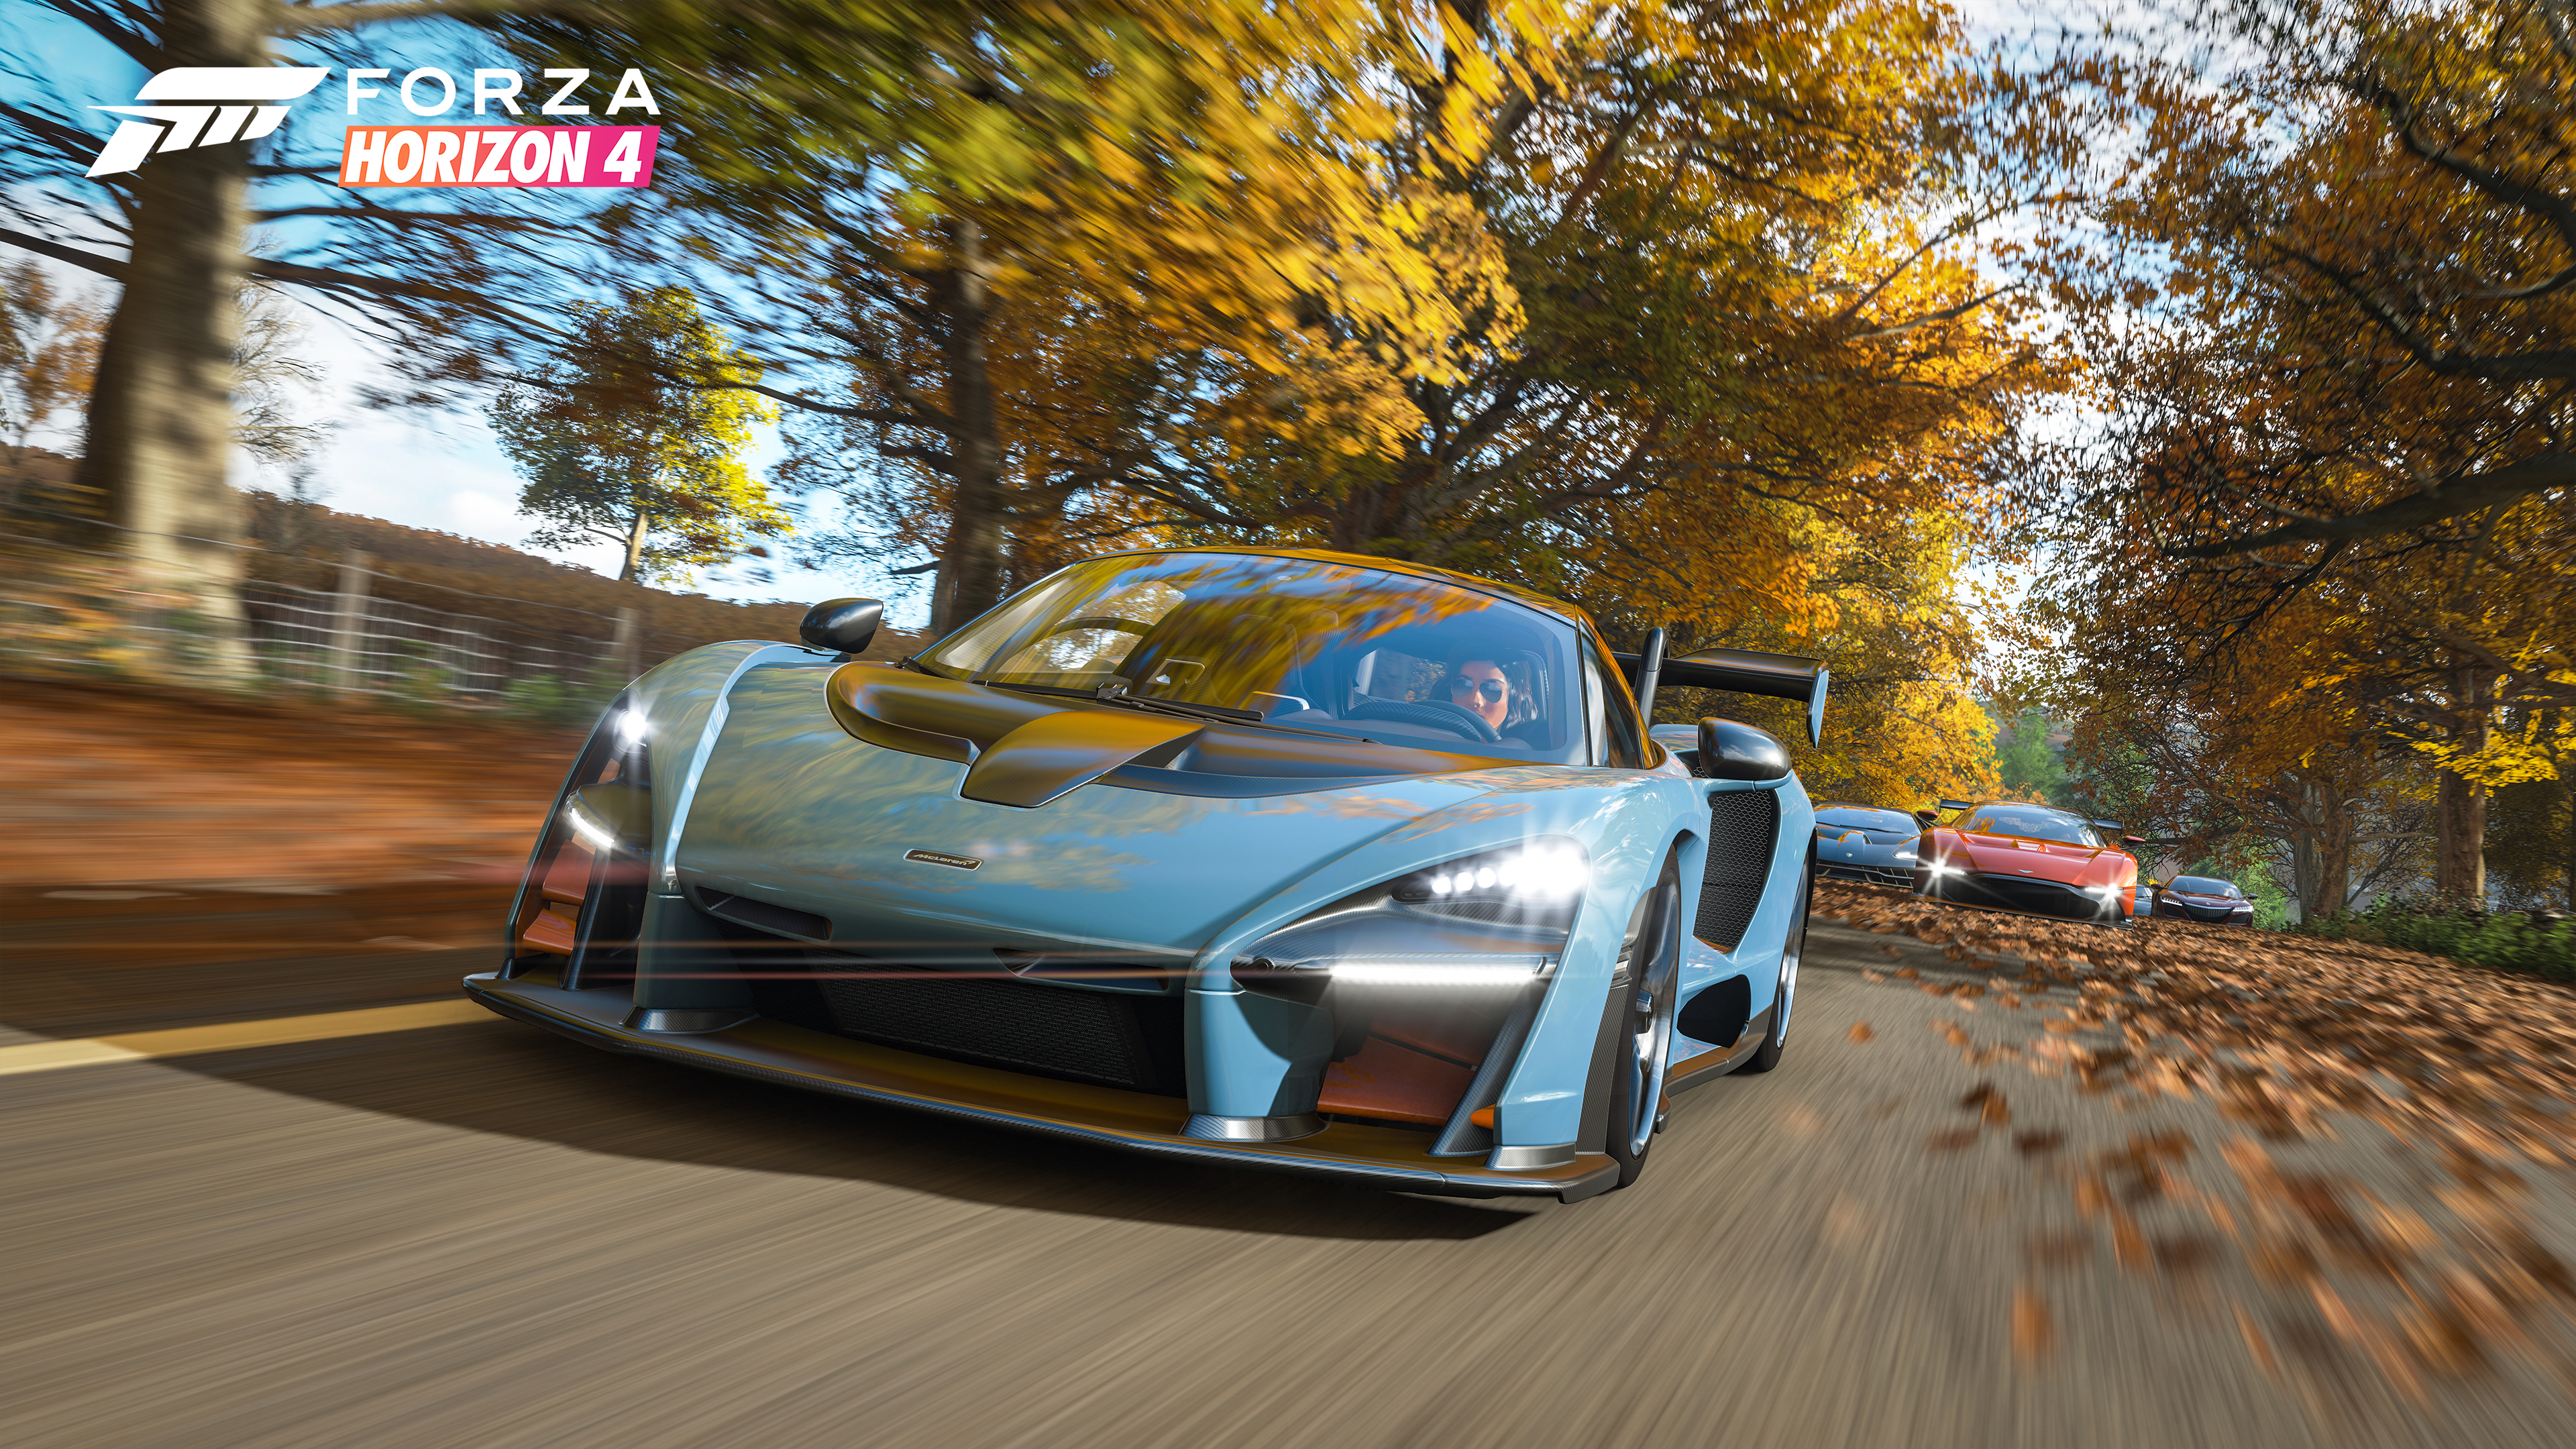 Forza Horizon 4 Senna in the Autumn looks amazing.